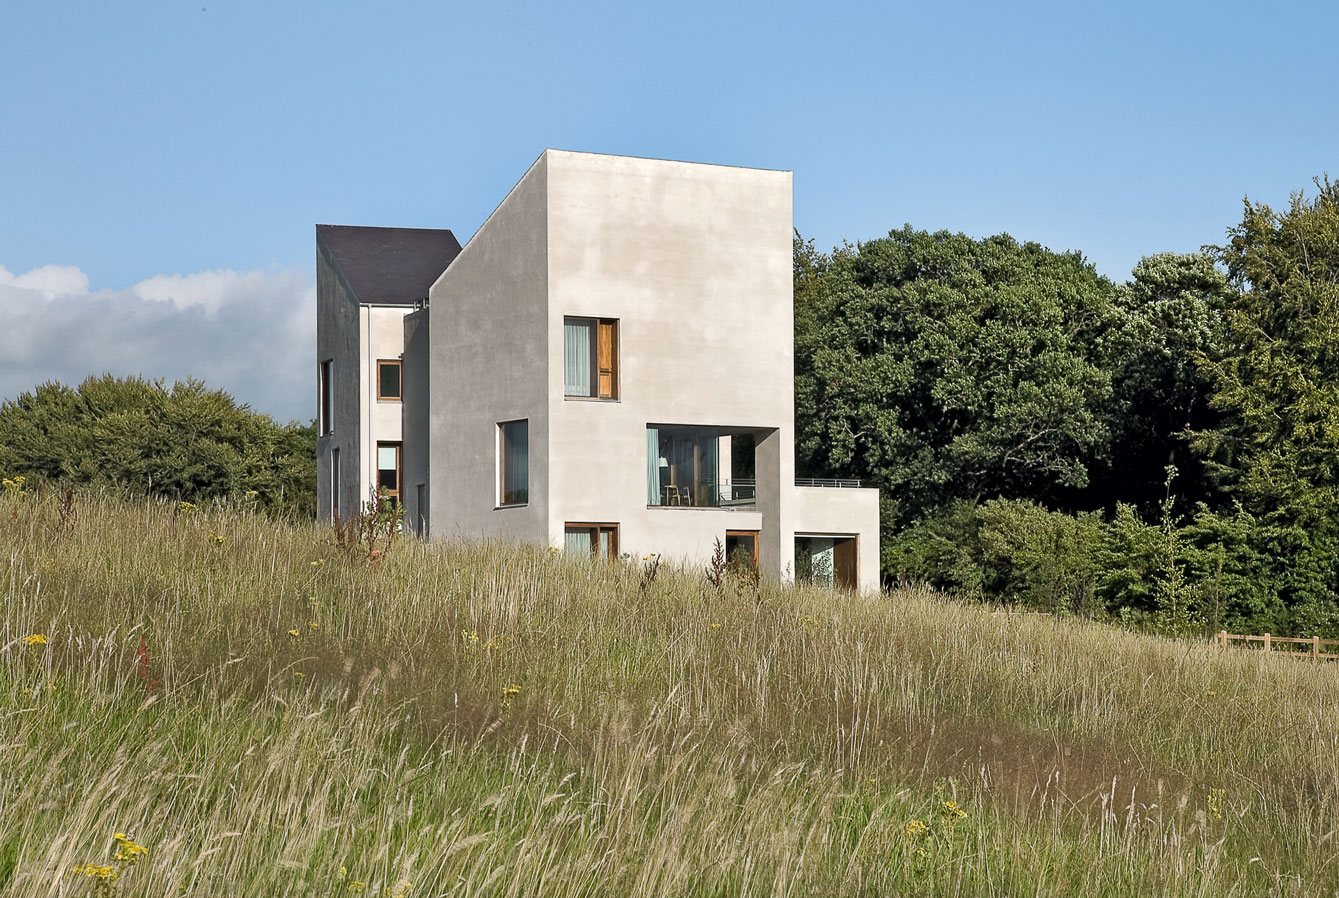 President's House, University of Limerick, Limerick, Grafton Architects, 2006-11; northeast view. Photo by Alice Clancy